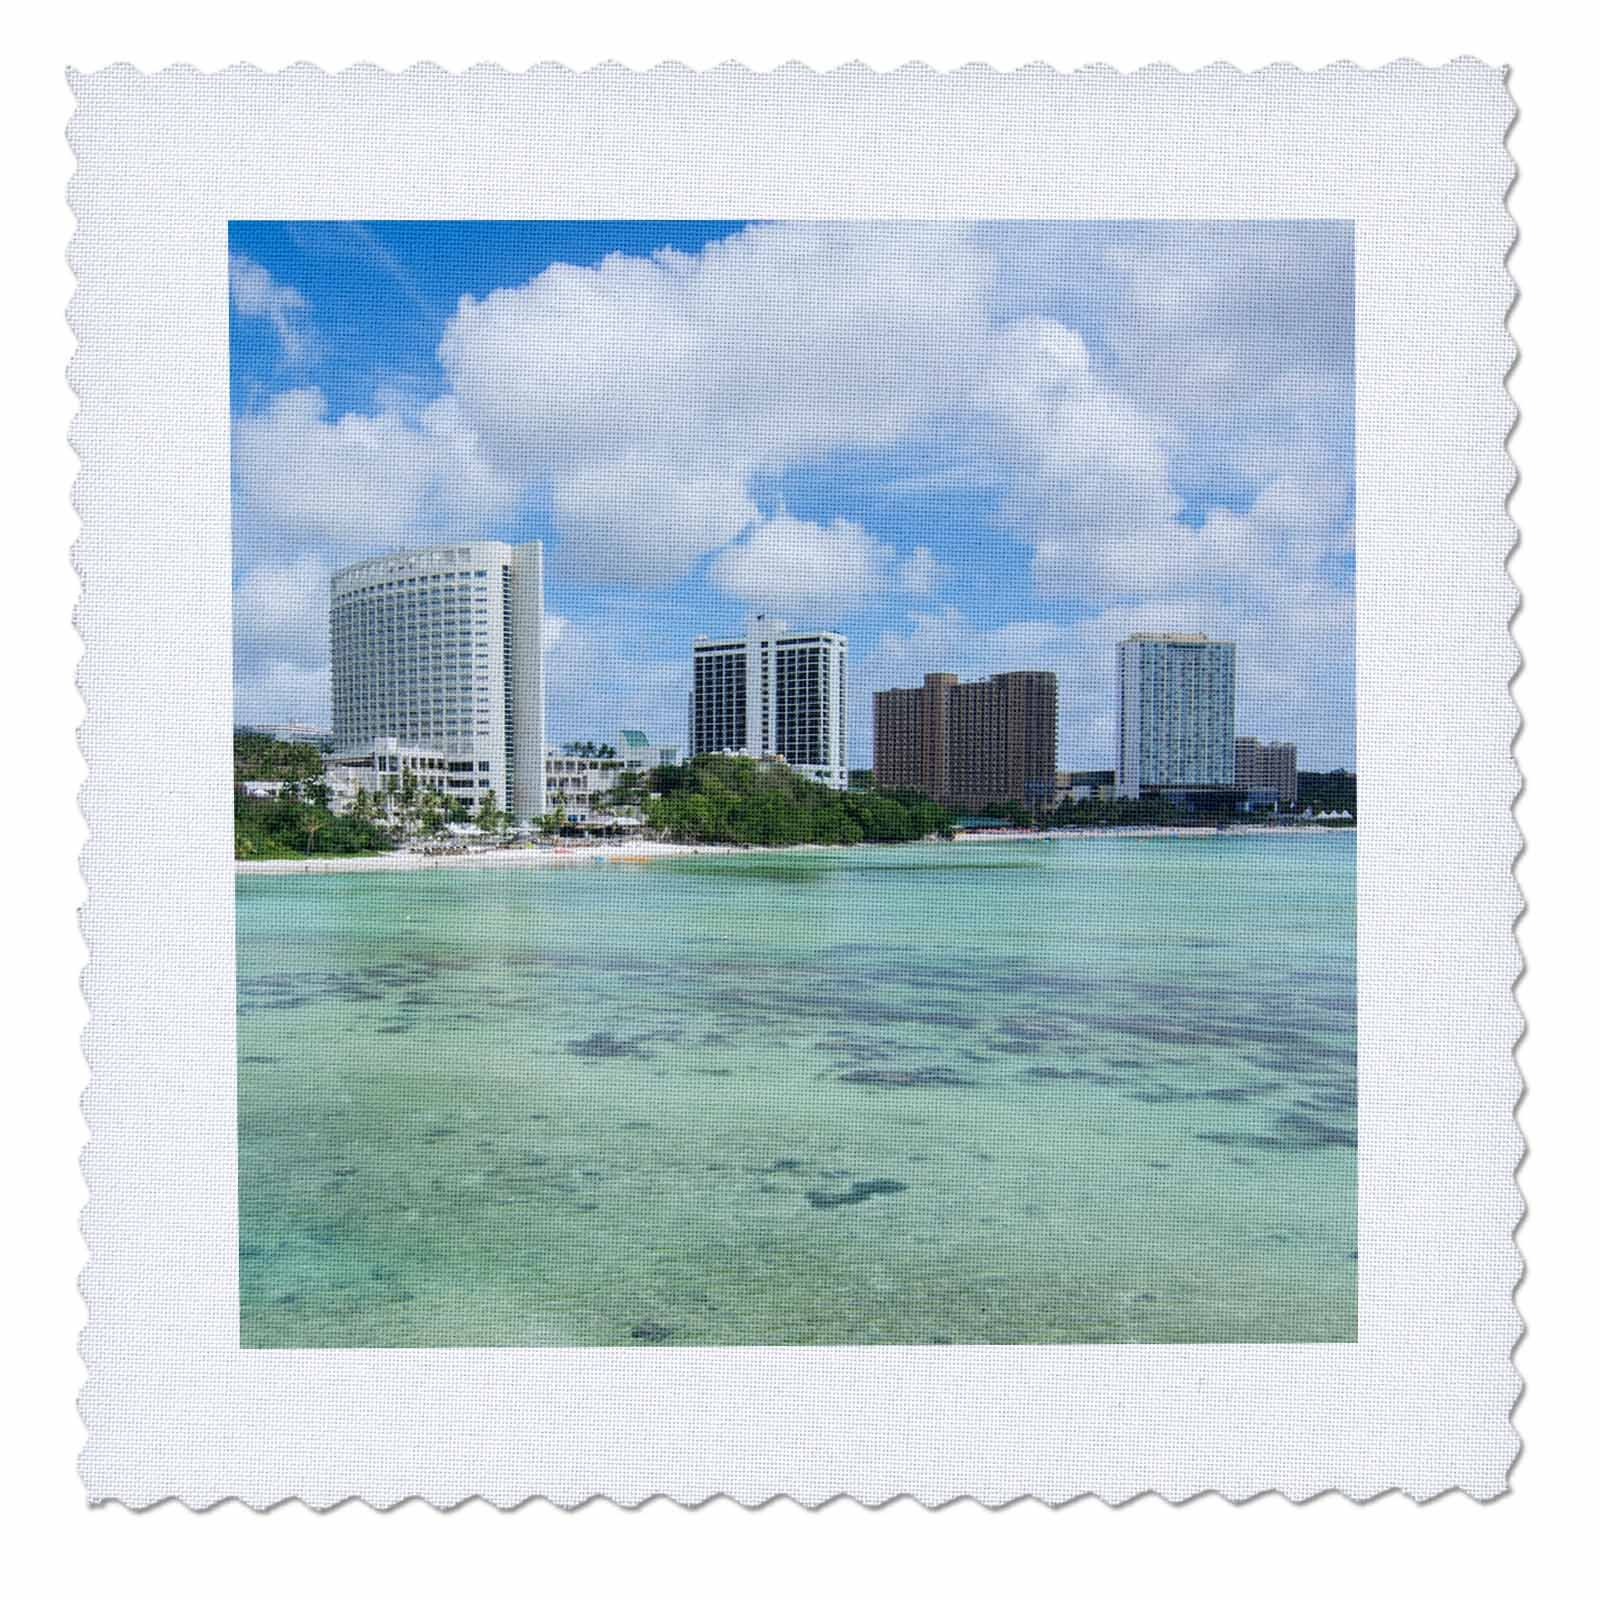 3dRose Danita Delimont - Cities - Guam Territory. Hotels line beach with clear tropical waters. - 16x16 inch quilt square (qs_278126_6)